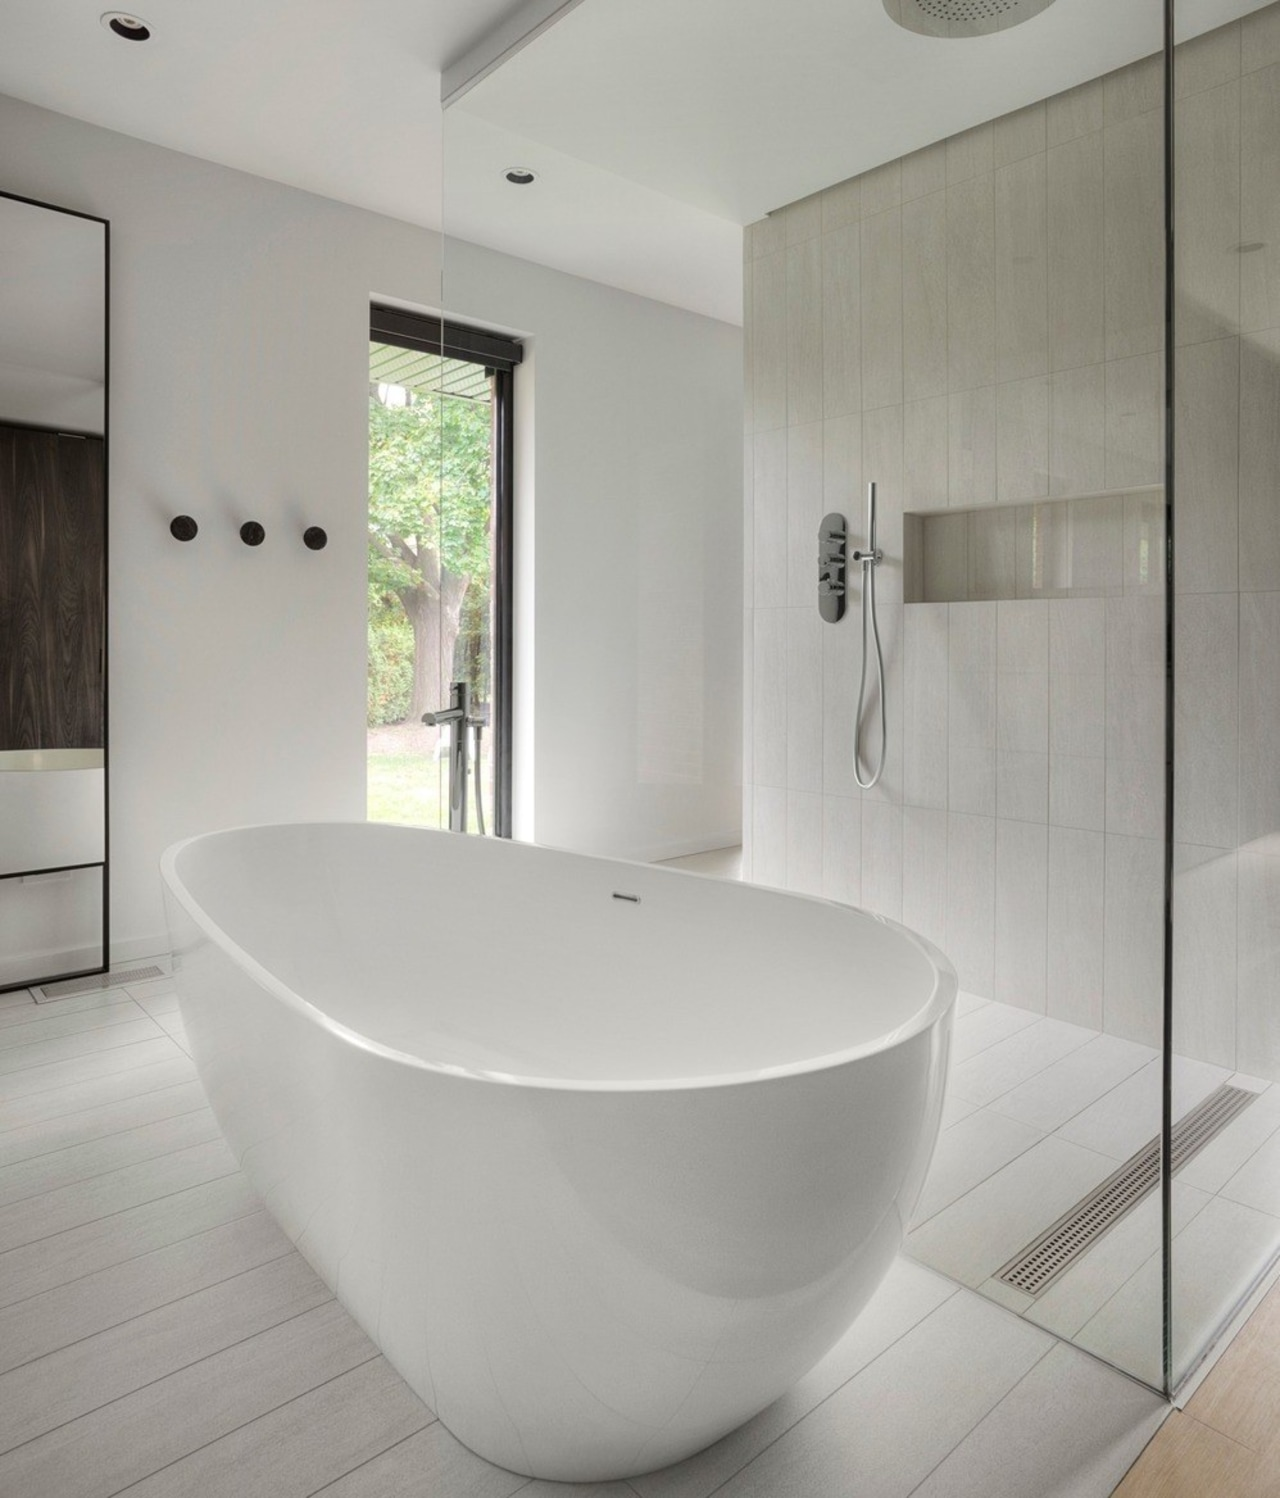 The freestanding bath tub in front of the architecture, bathroom, bathtub, building, ceiling, ceramic, floor, flooring, house, interior design, marble, material property, plumbing fixture, property, room, tap, tile, gray